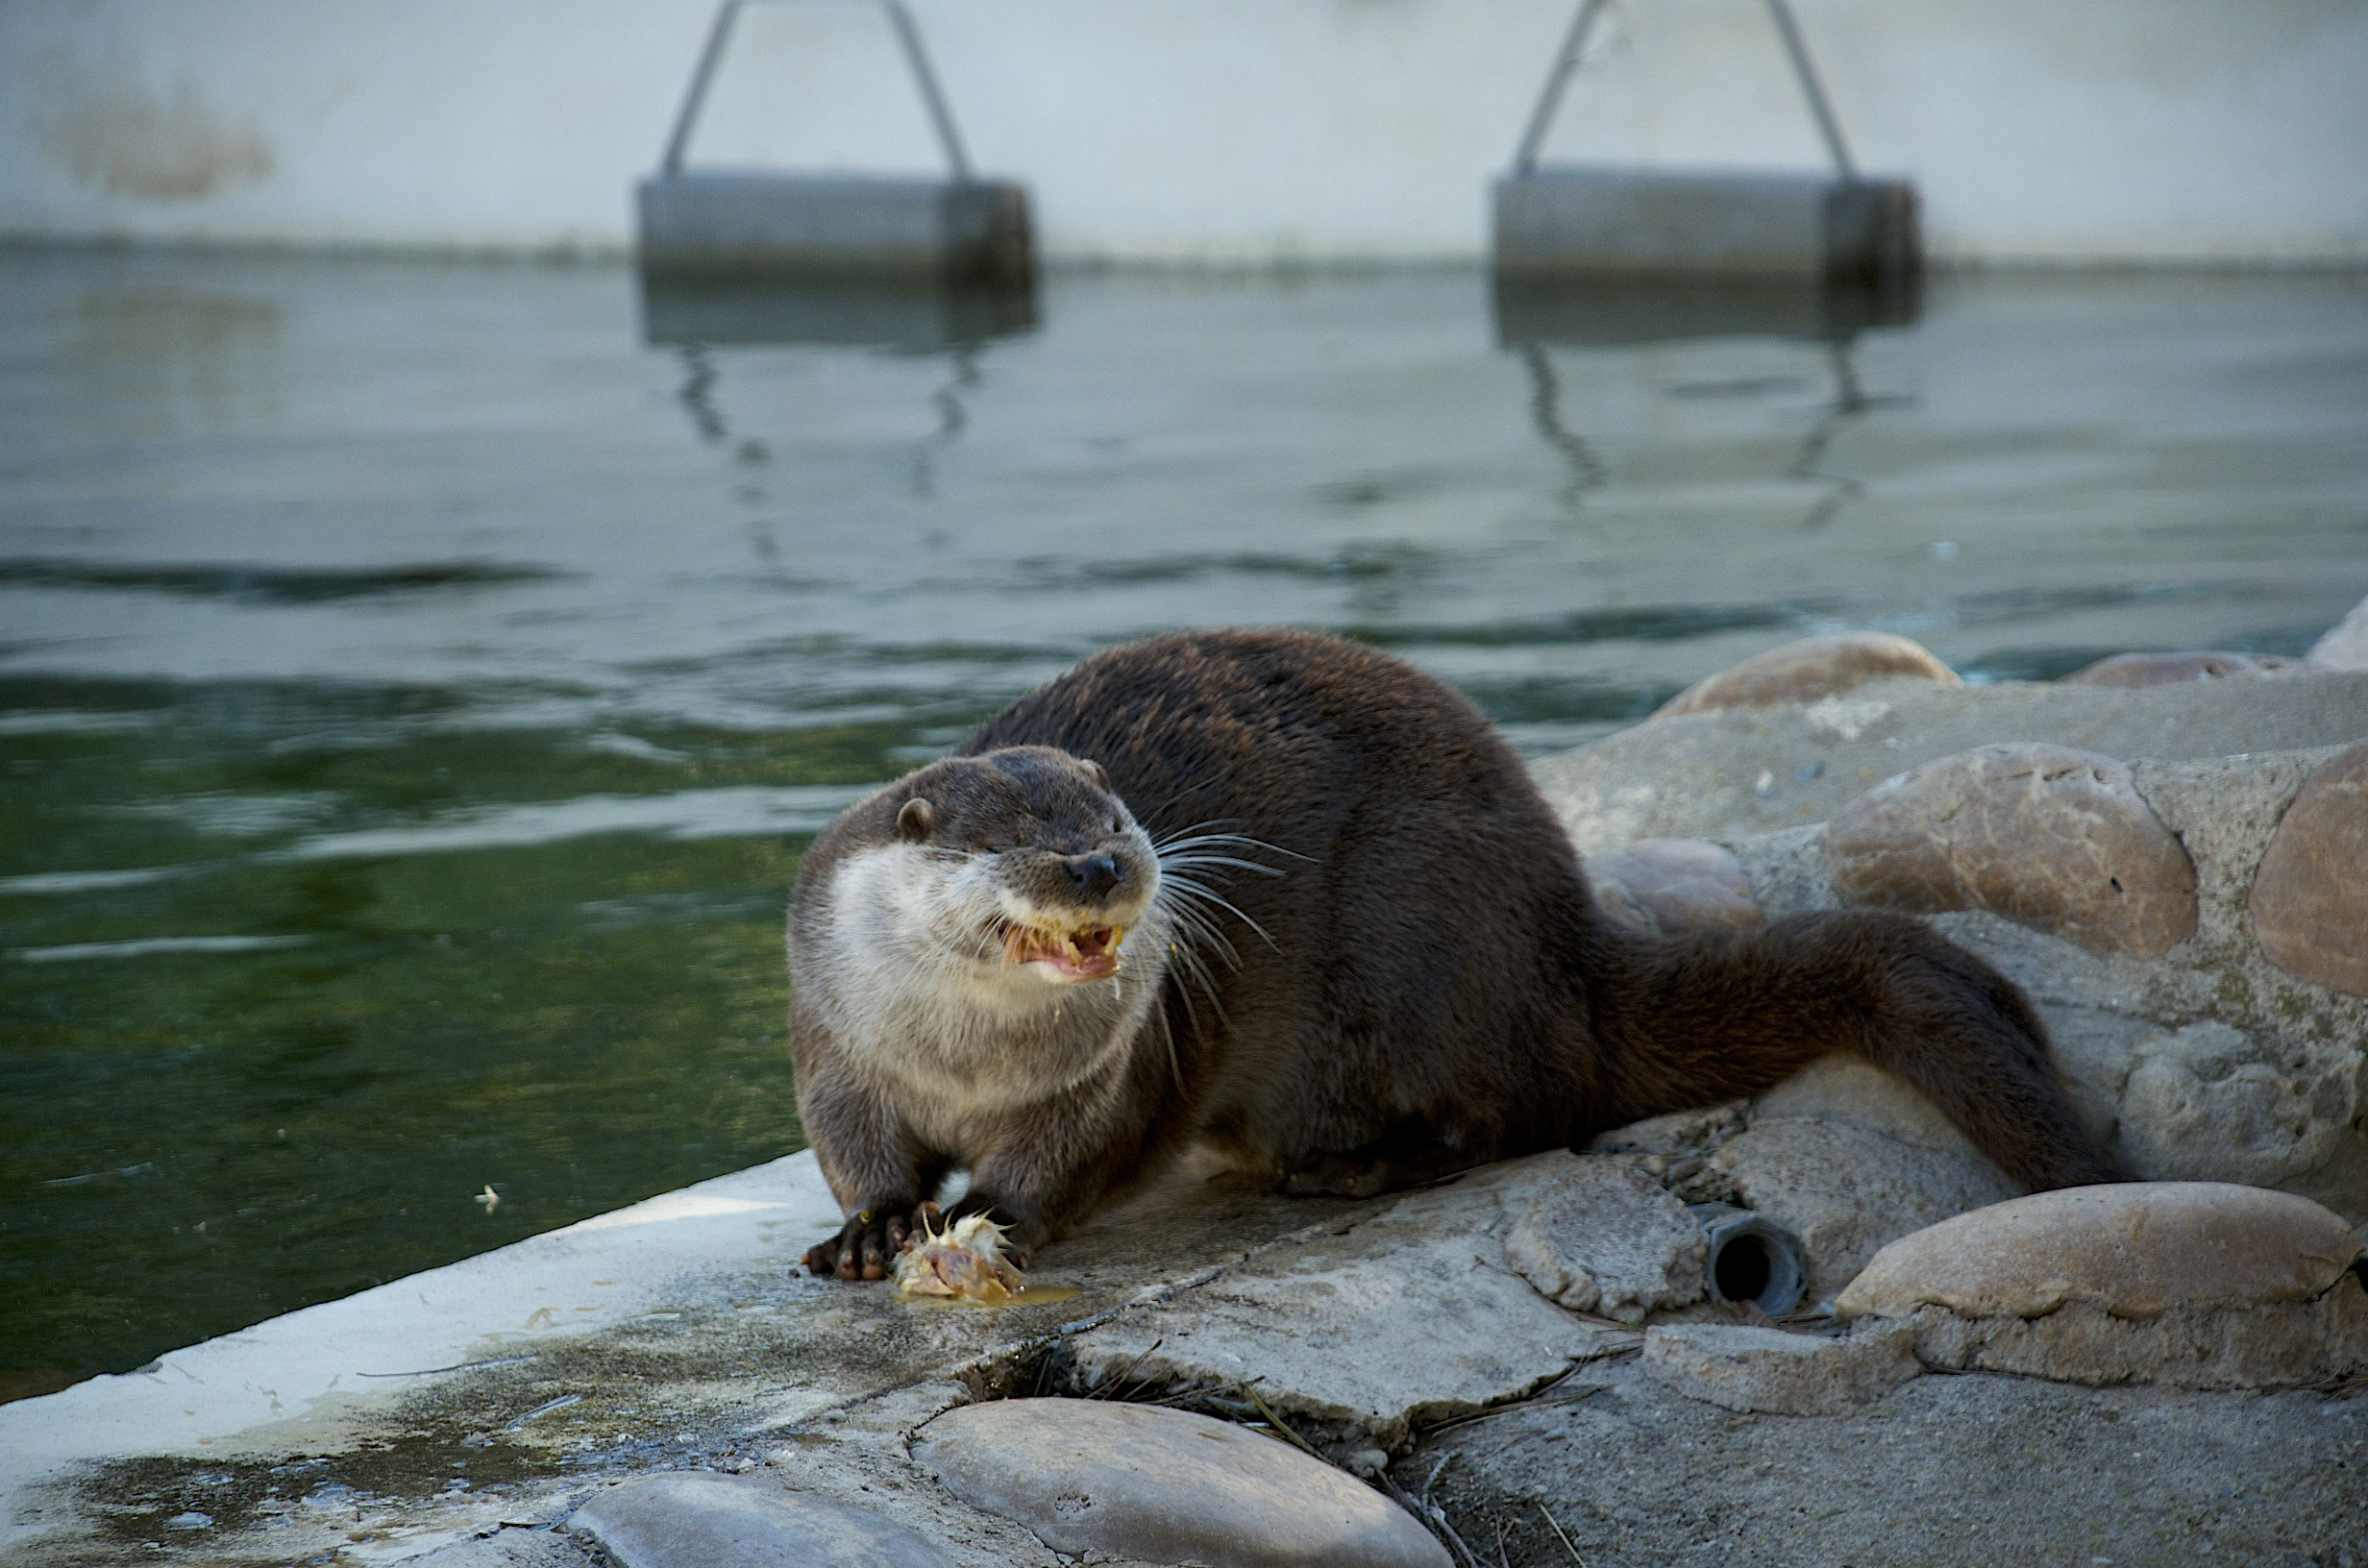 Otter Concentrates Very Hard on Nomming His Food 1